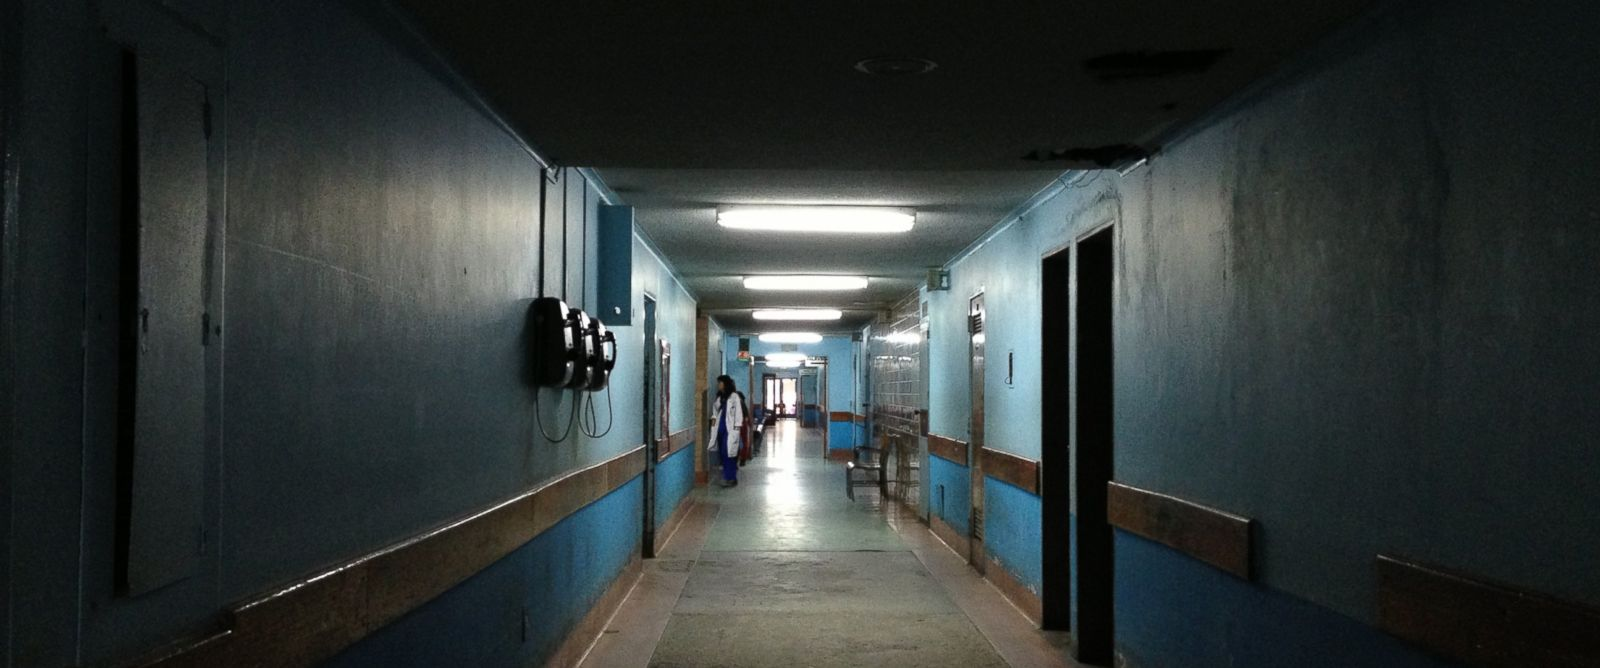 PHOTO: Many hallways of the Hospital Universitario in Caracas, Venezuela lacked light bulbs on July 13, 2016.